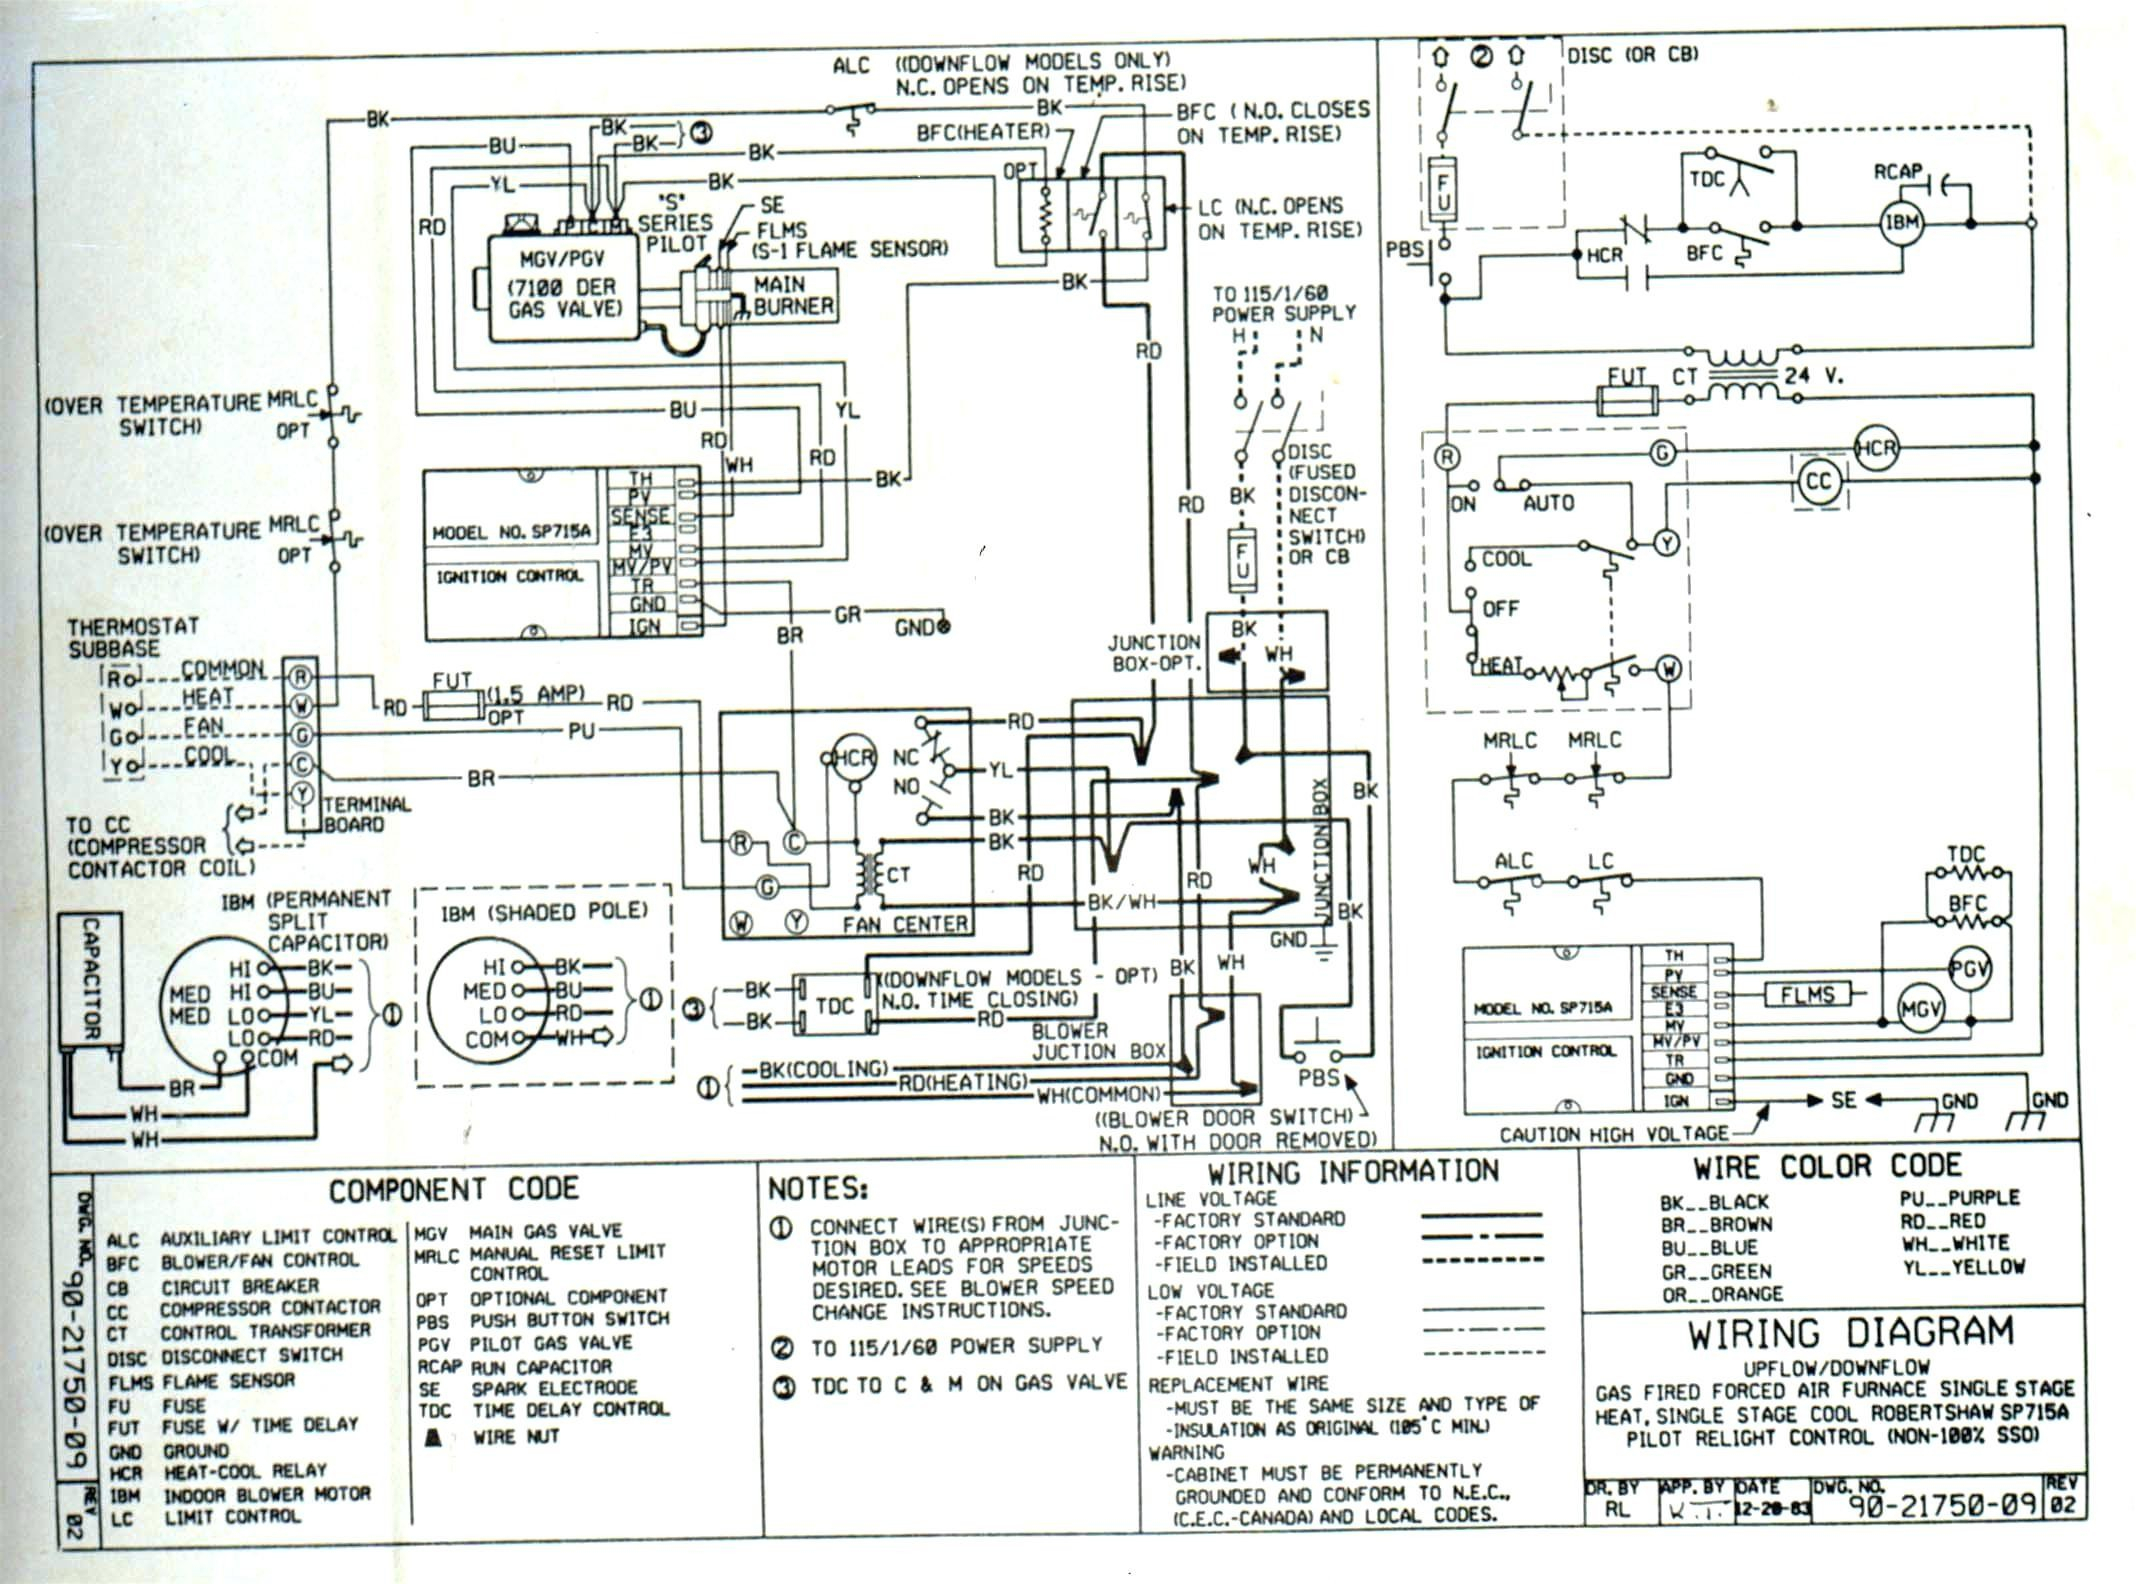 aaon rooftop units wiring diagram gallery rooftop air conditioner wiring diagram